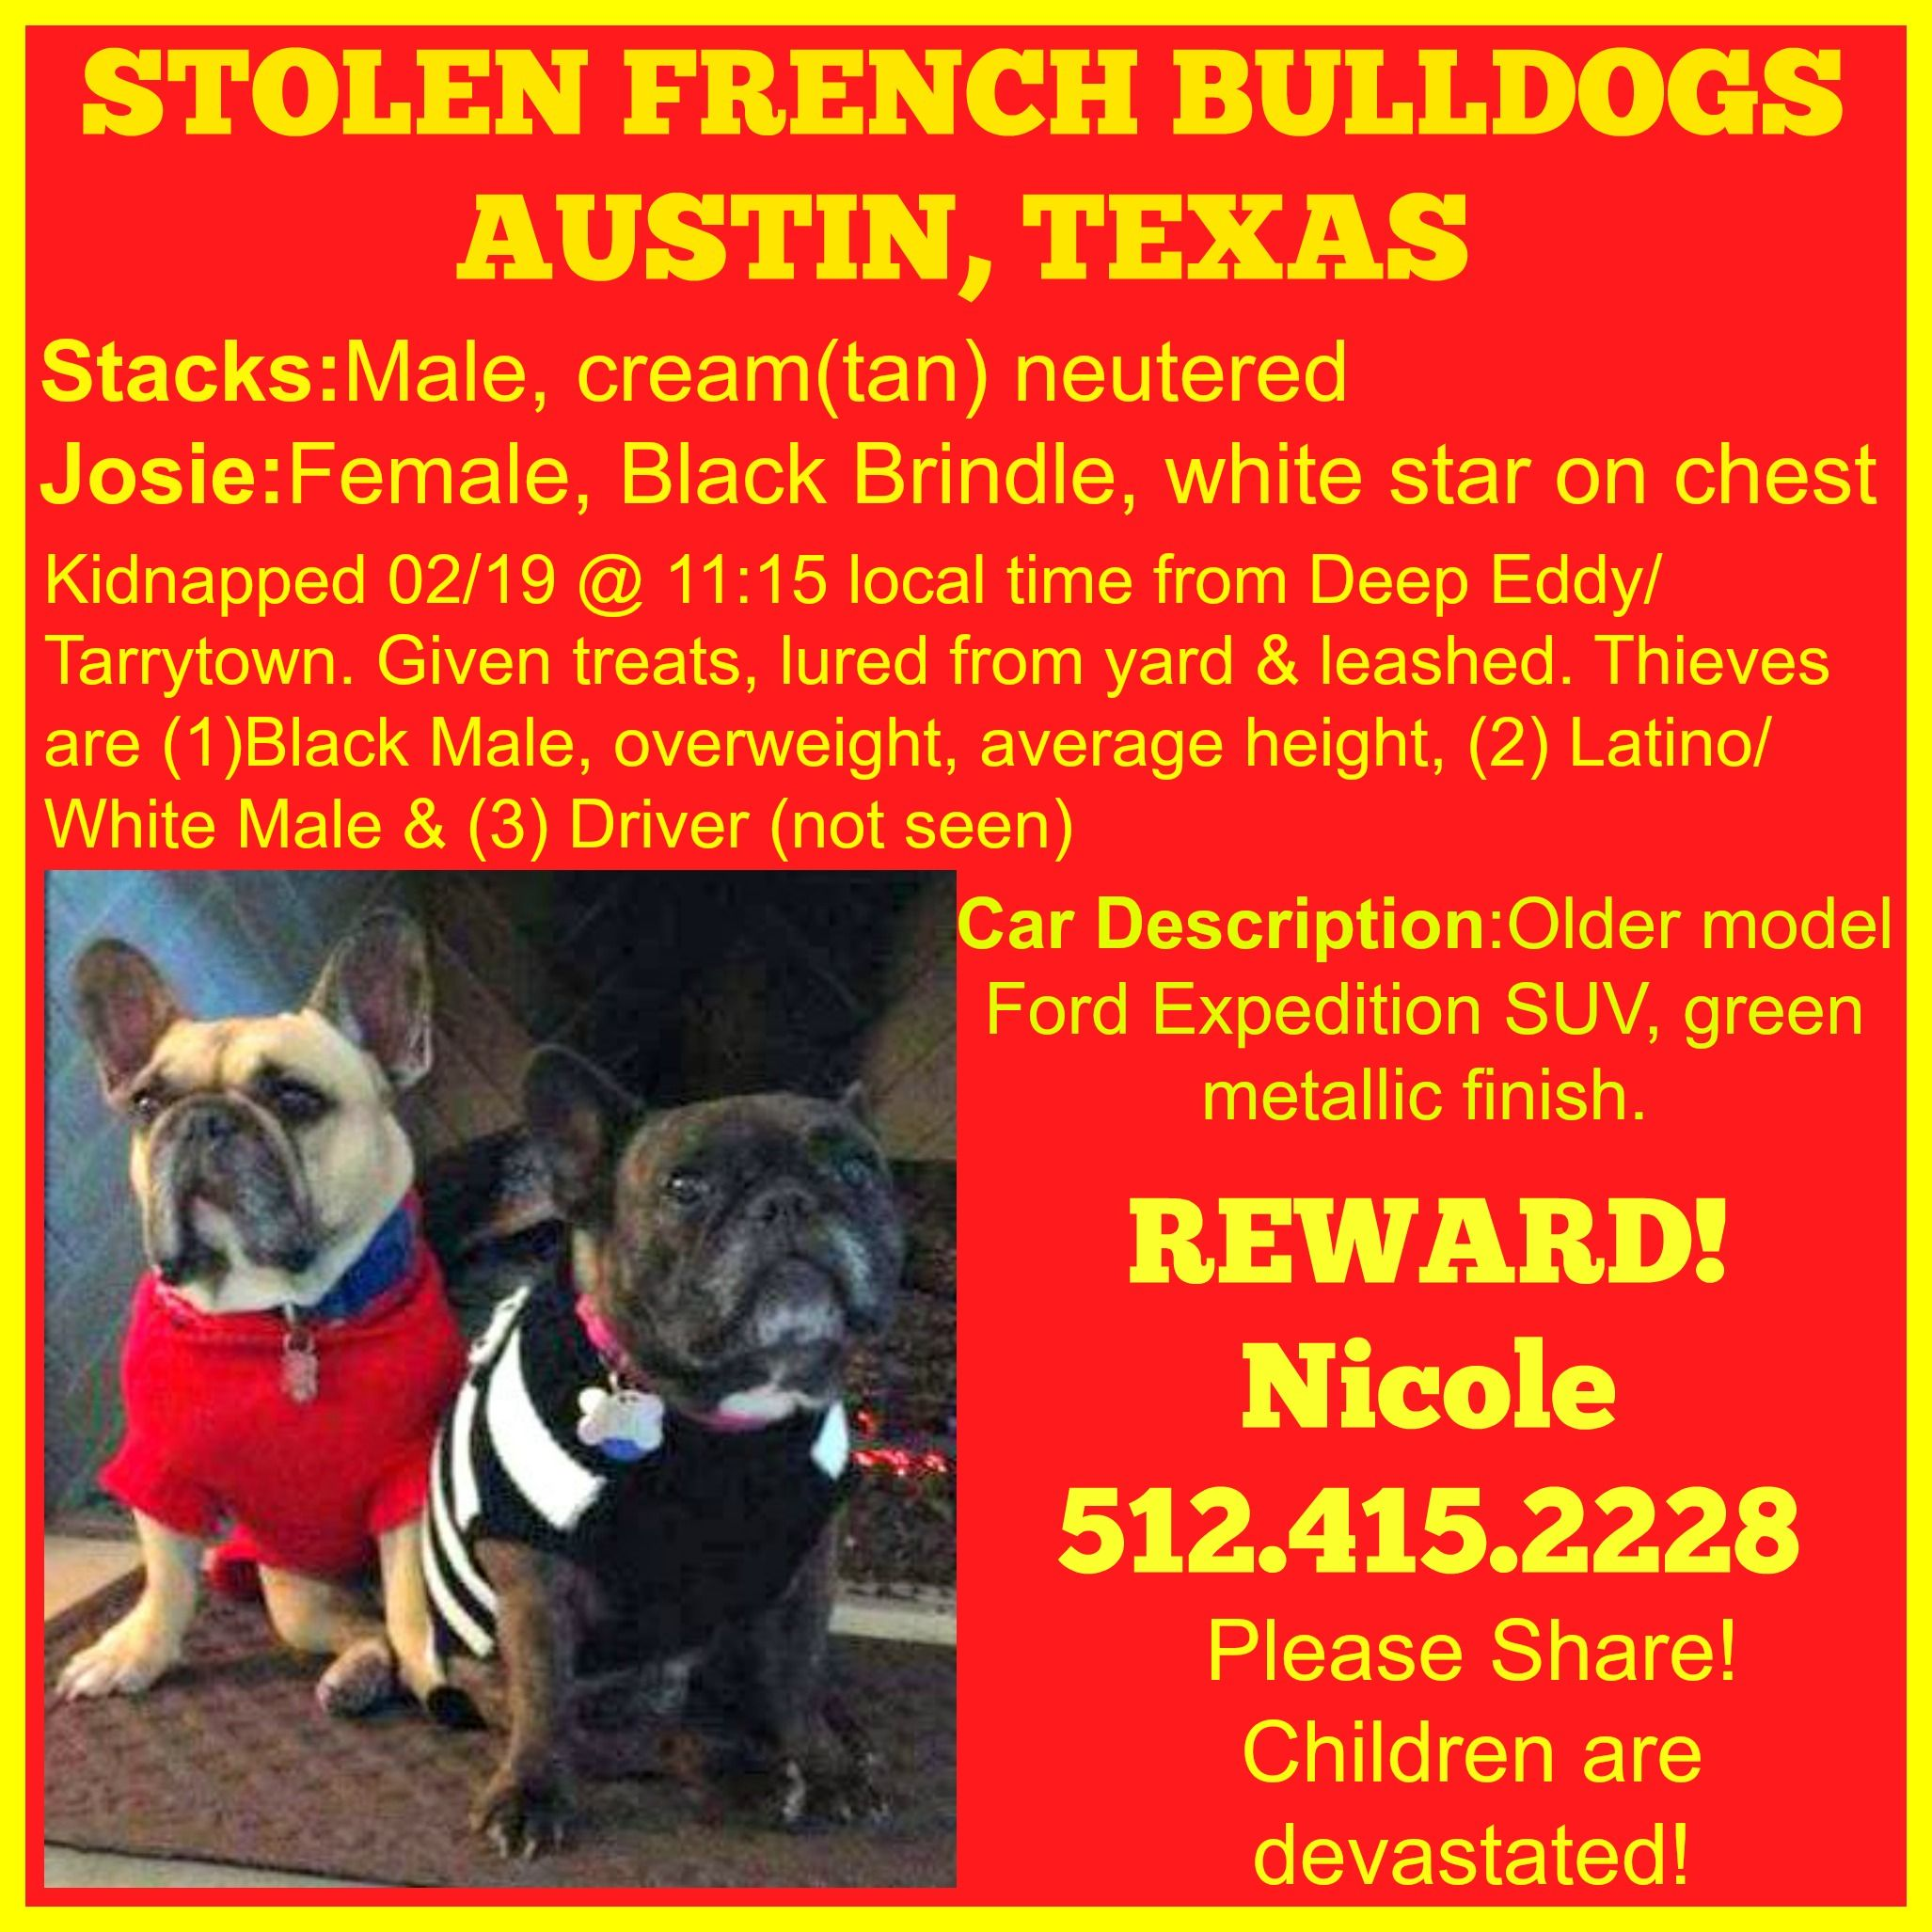 Kidnapped French Bulldogs On 2 19 Austin Texas Please Share Frenchie Frenchbulldog Austin Texas French Bulldog French Bulldog Facts I Love Dogs